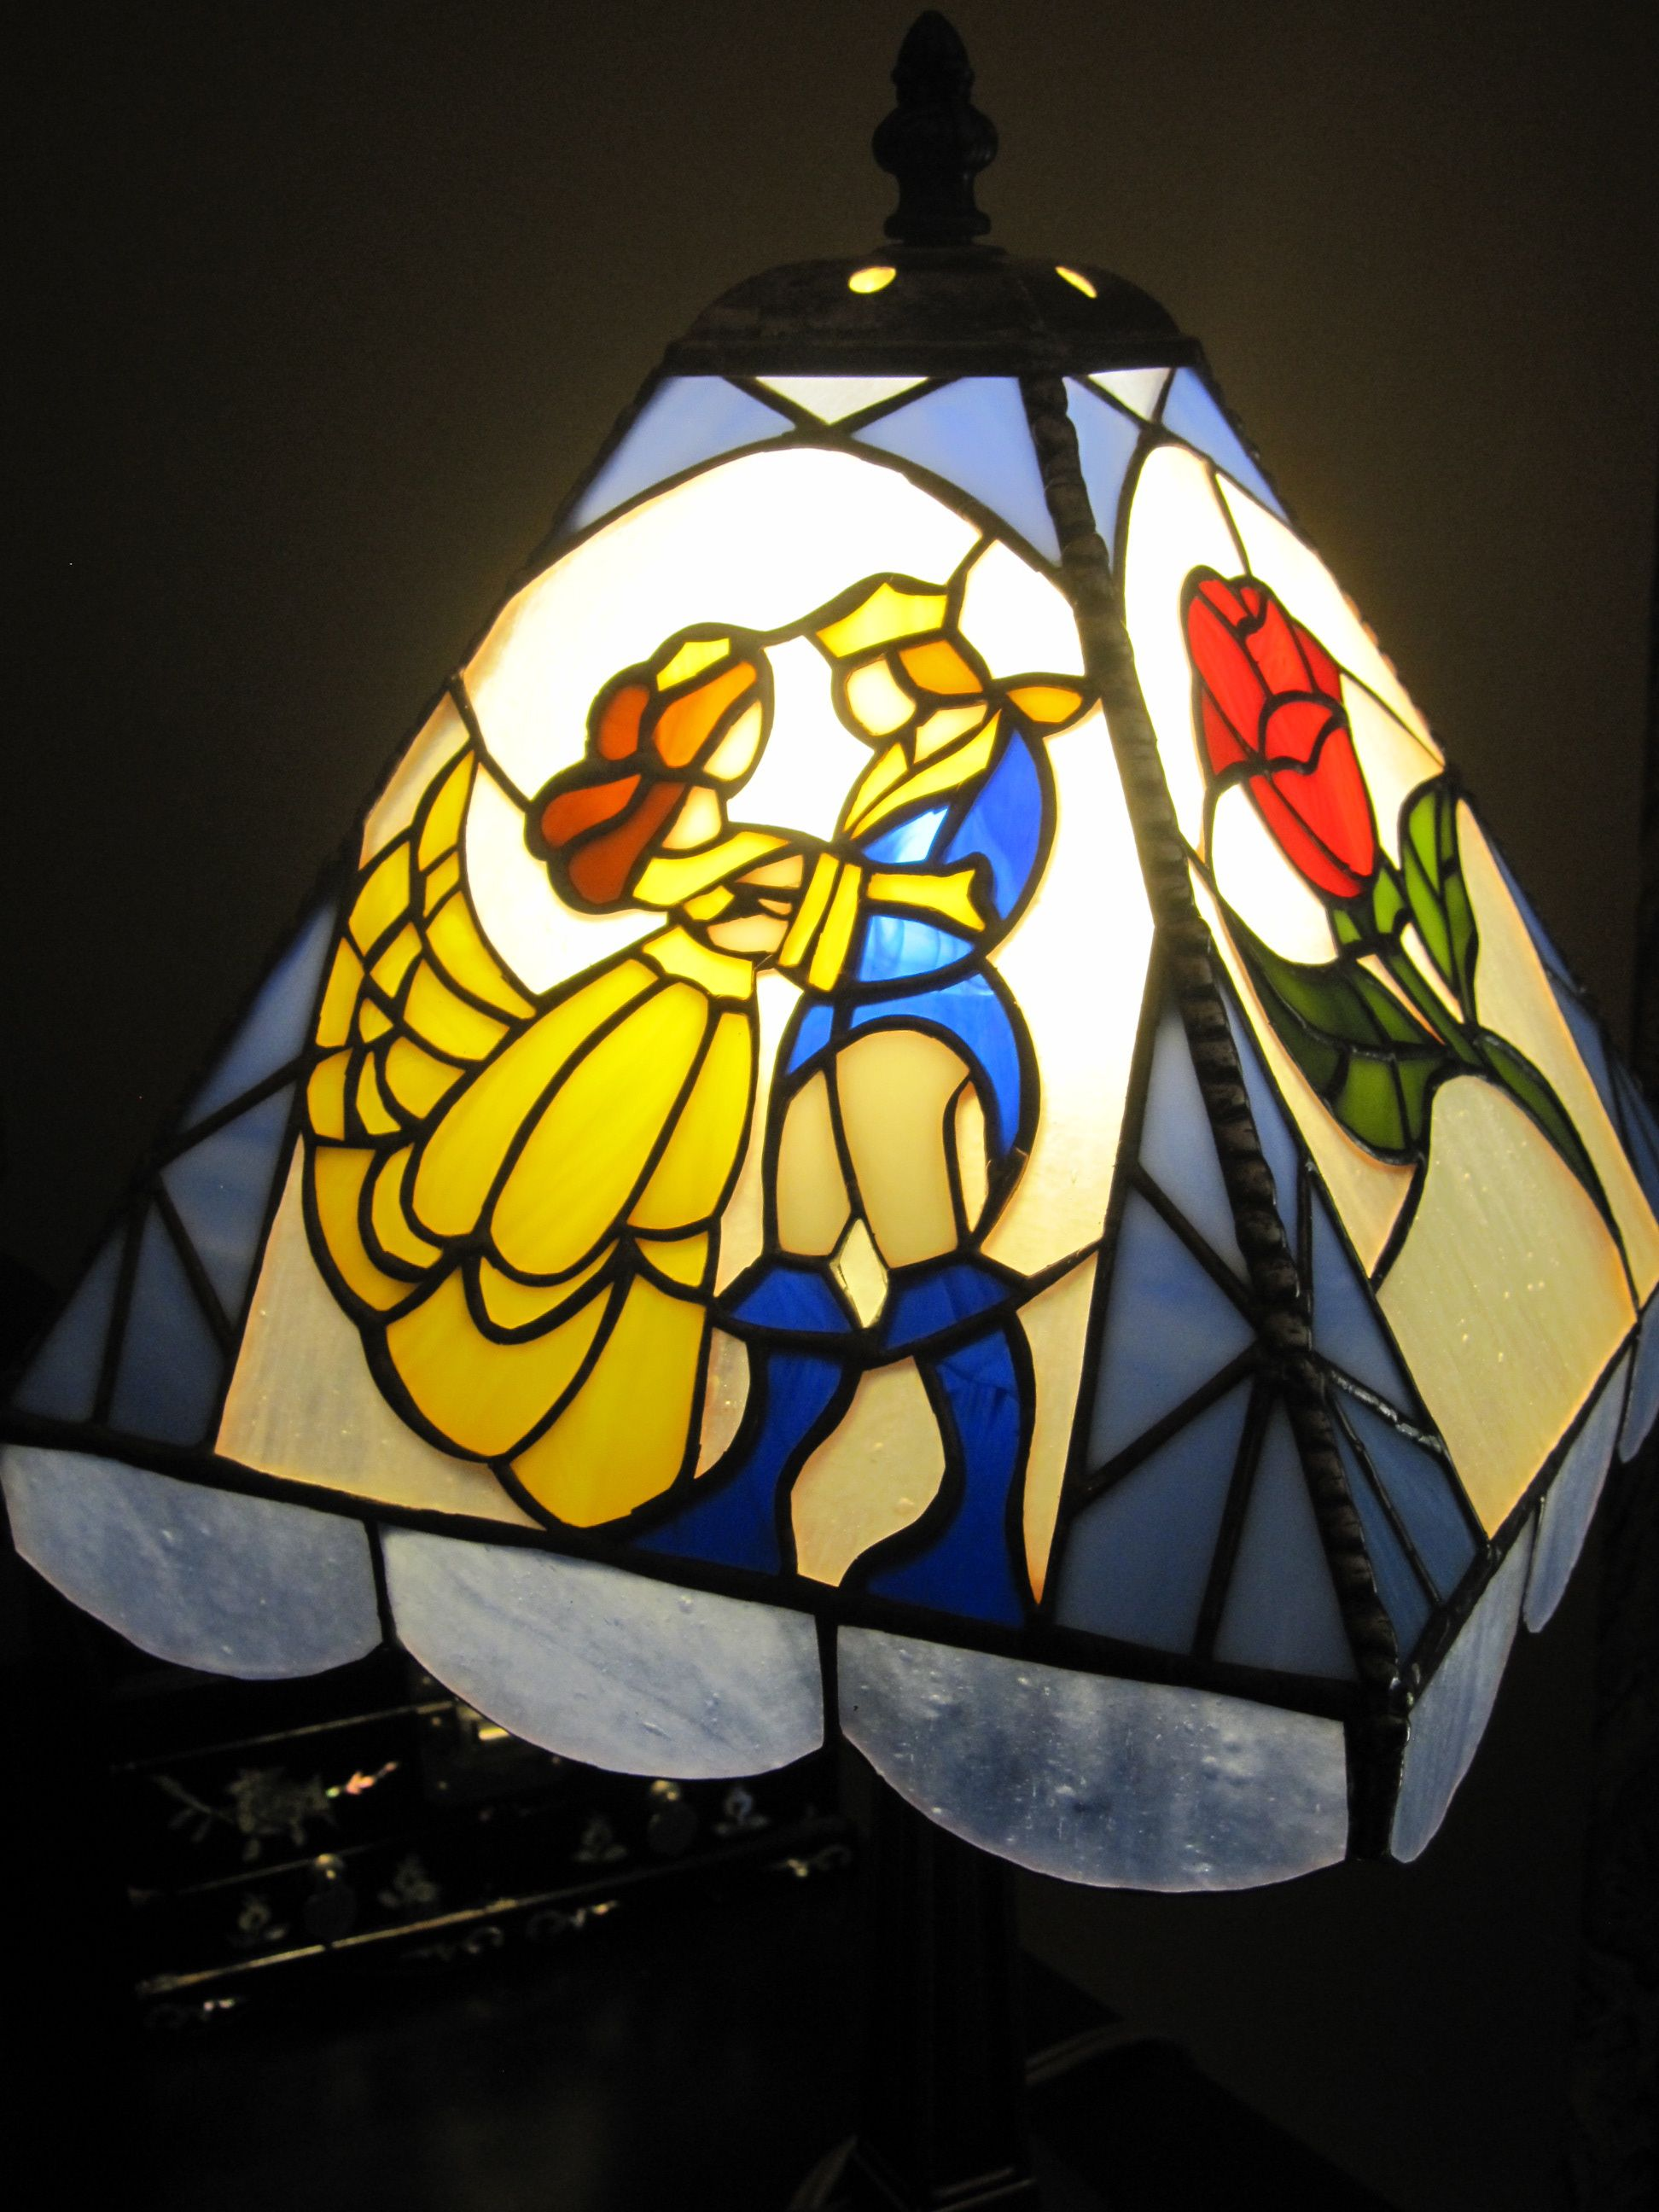 Beauty and the beast belles bedroom - Beauty And The Beast Lamp I Designed And Made For My Friend S Daughter